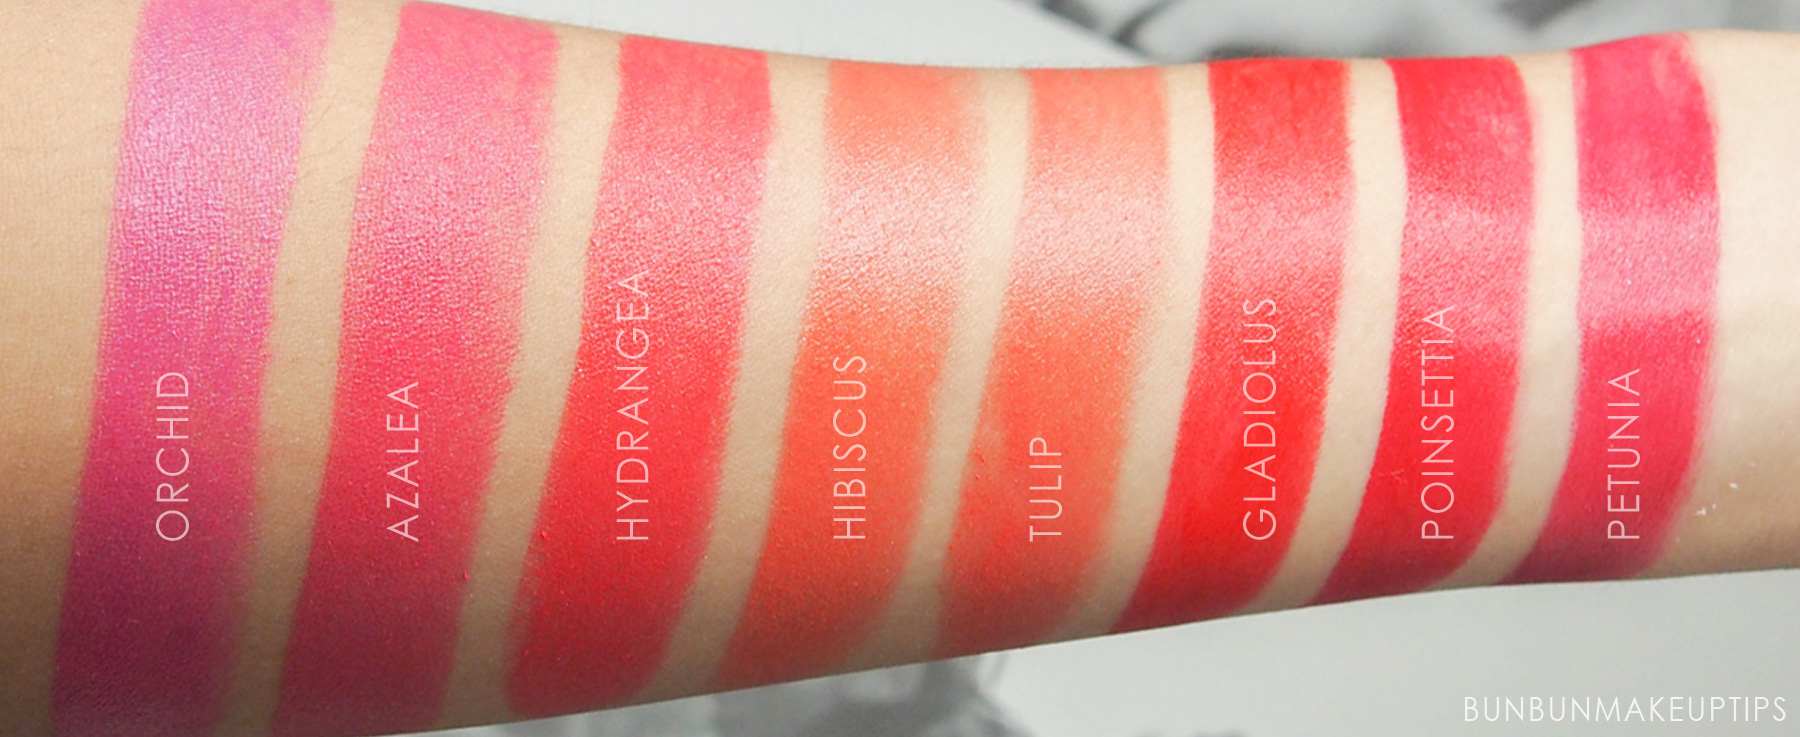 Revlon-Ultra-HD-Lipstick-Review-Swatches